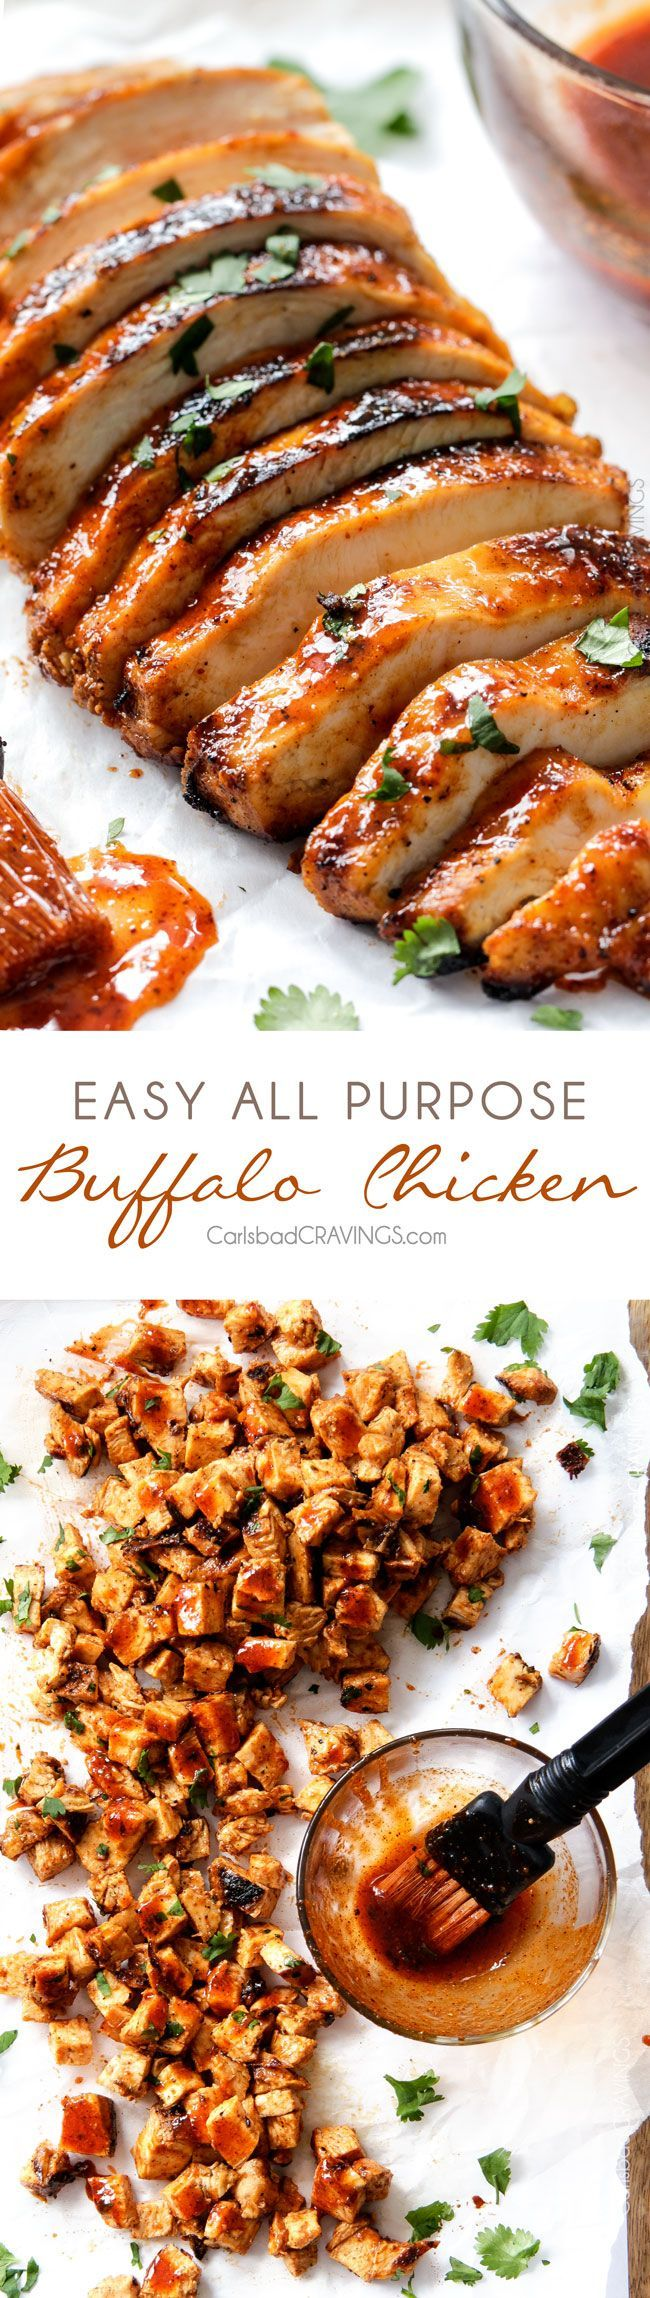 All Purpose Buffalo Chicken is SO juicy and flavorful from the easy marinade and is a meal all  itself or instantly transforms salads sandwiches wraps tacos etc into the most flavor bursting meal EVER! I love having this chicken on hand!